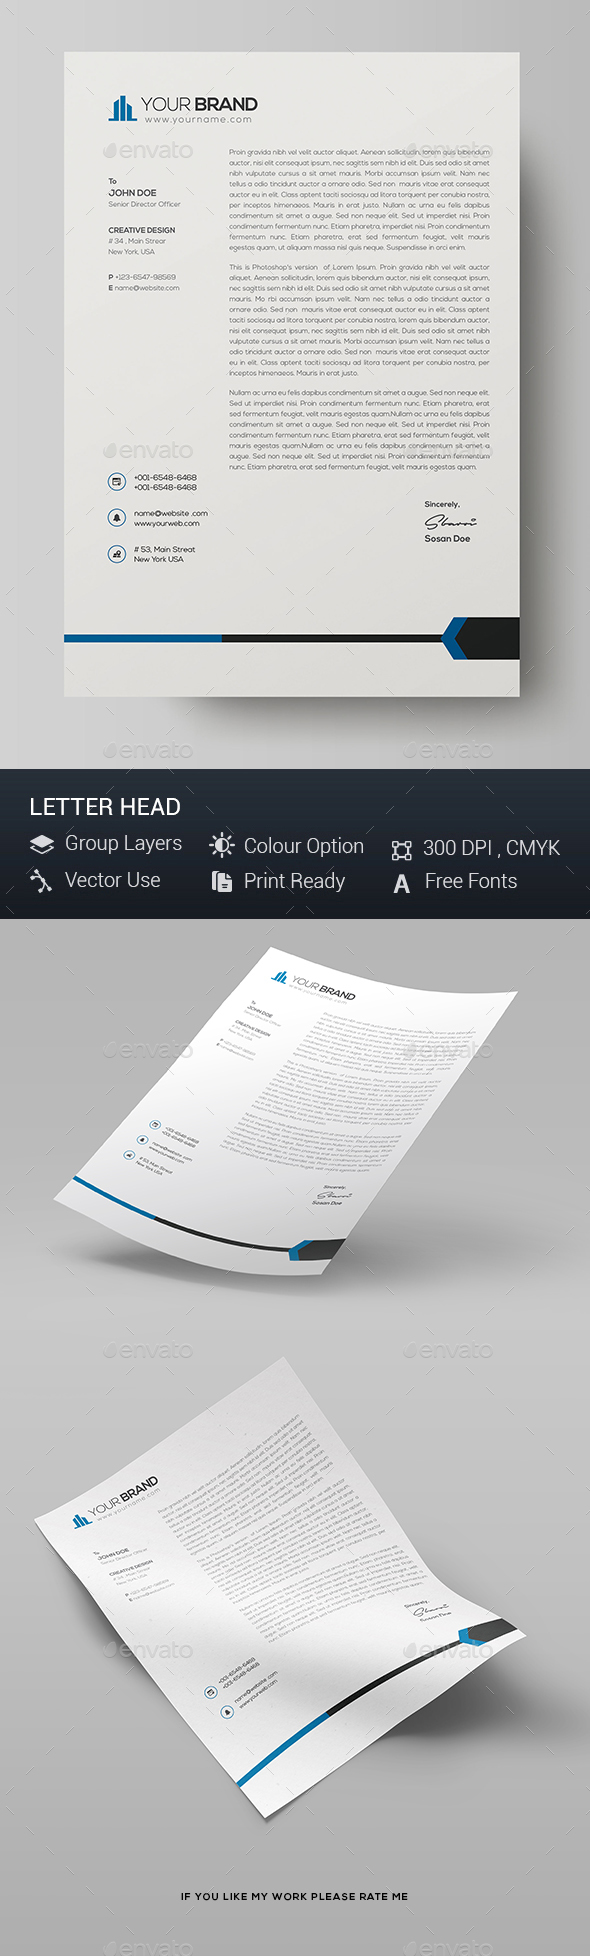 GraphicRiver Letterhead Template 21150446